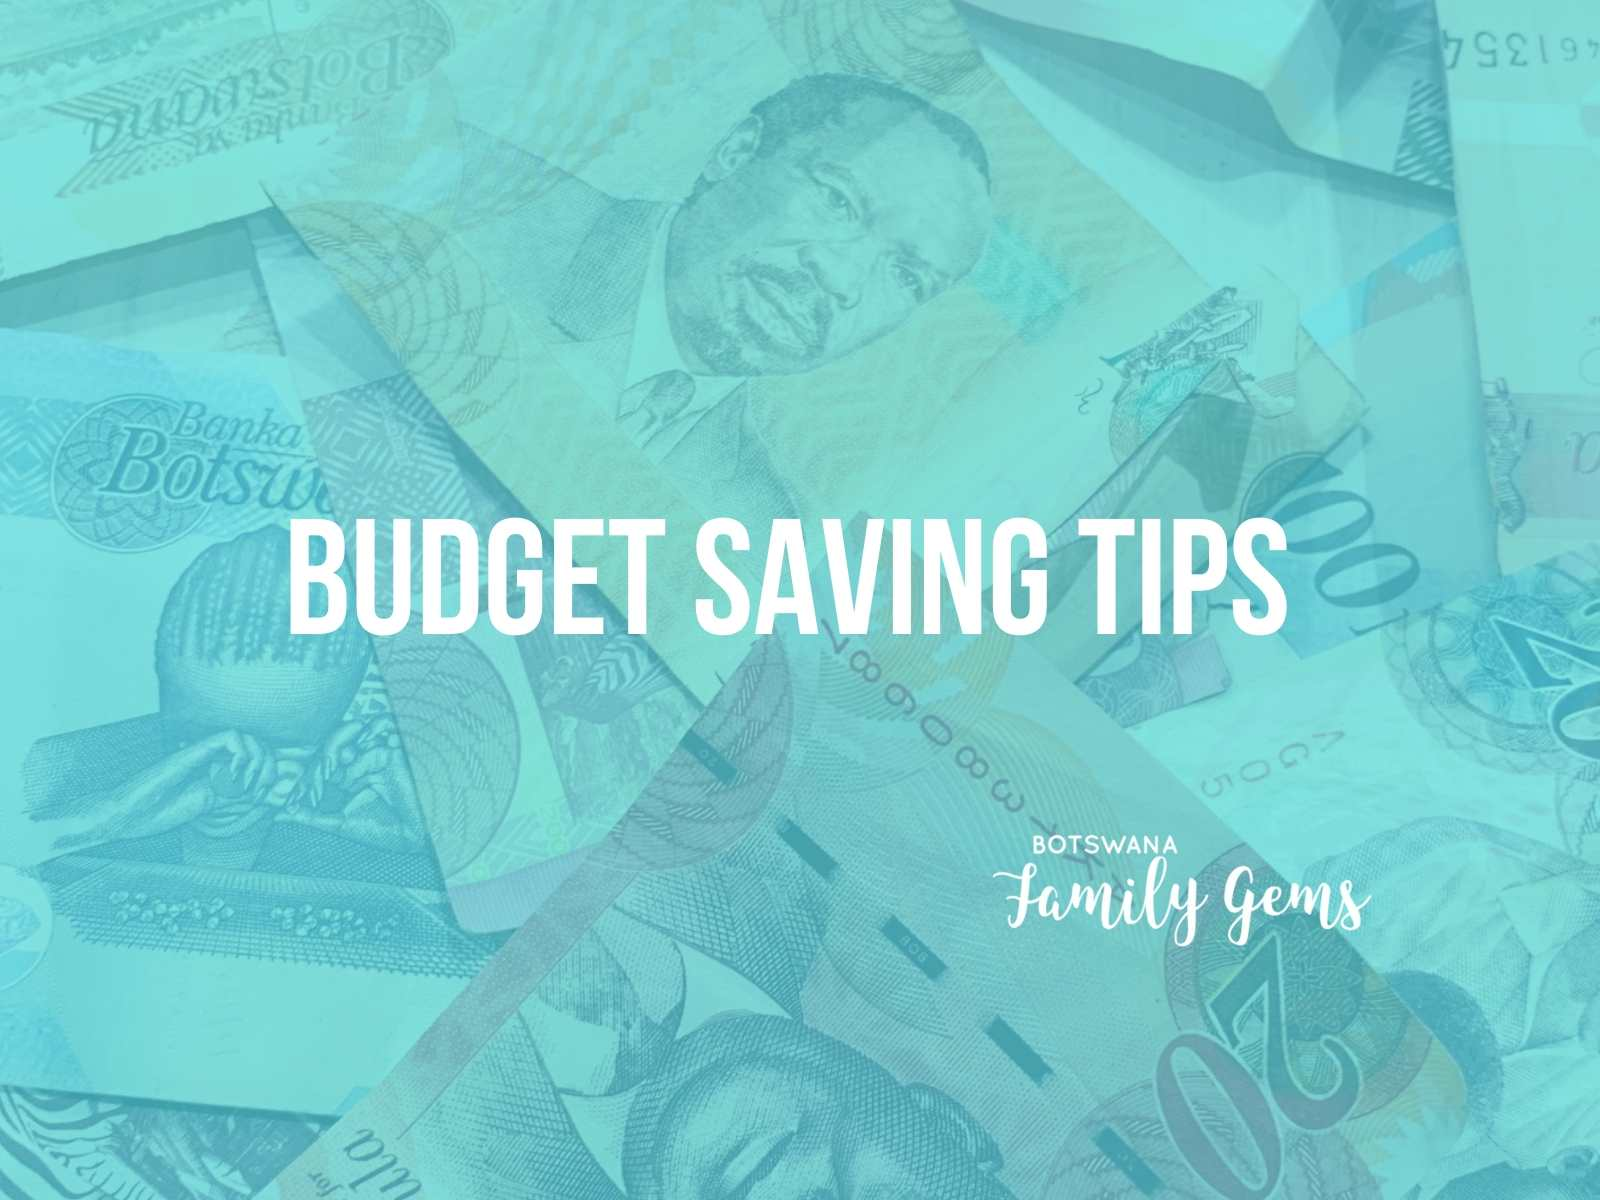 Tarryn Stellenburgs Budget saving tips